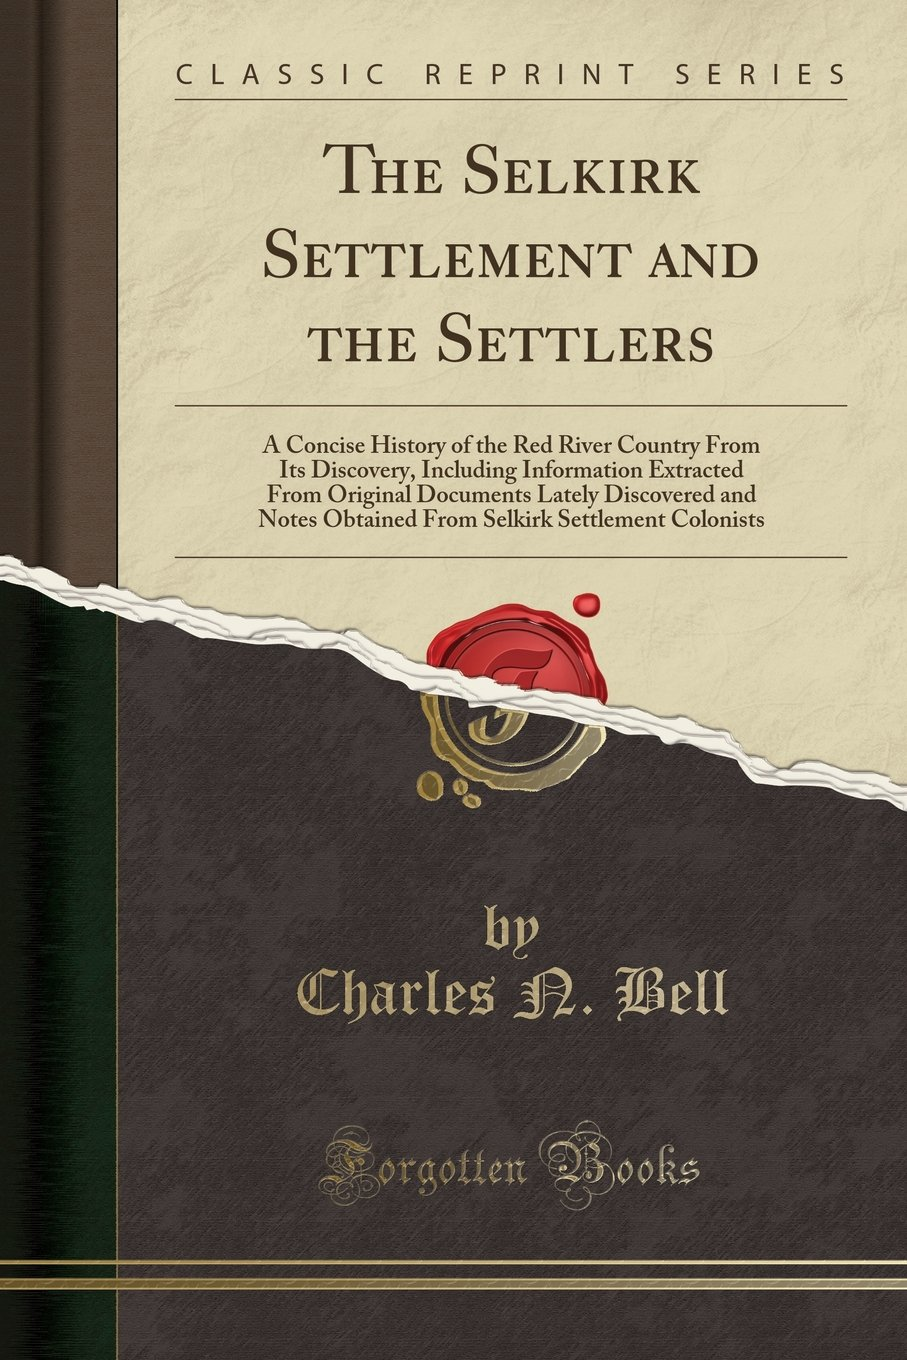 Download The Selkirk Settlement and the Settlers: A Concise History of the Red River Country From Its Discovery, Including Information Extracted From Original ... Settlement Colonists (Classic Reprint) ebook